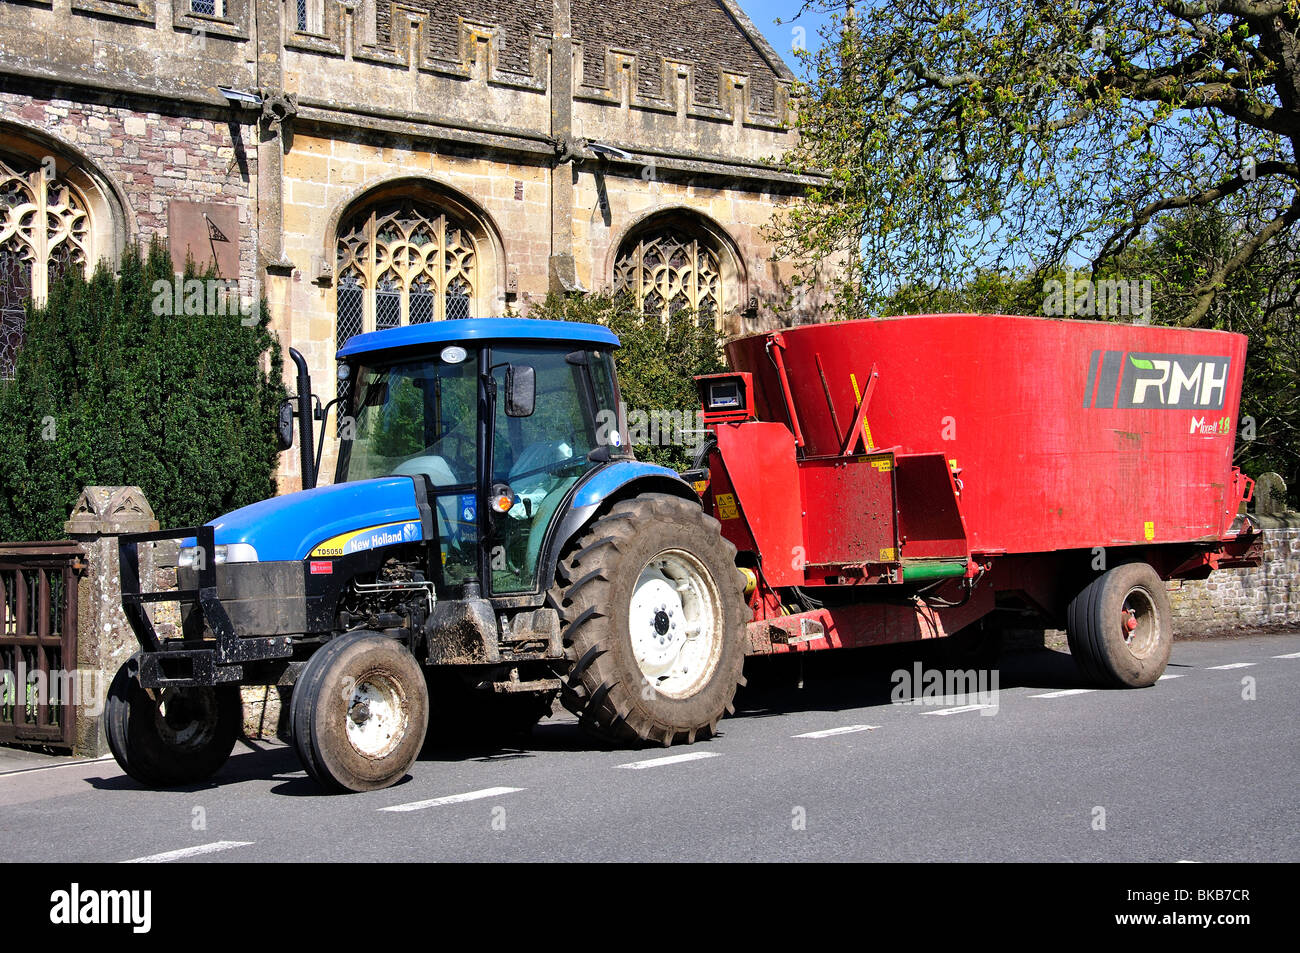 New Holland Tractor and RMH Mixell 18 Feeder Mixer